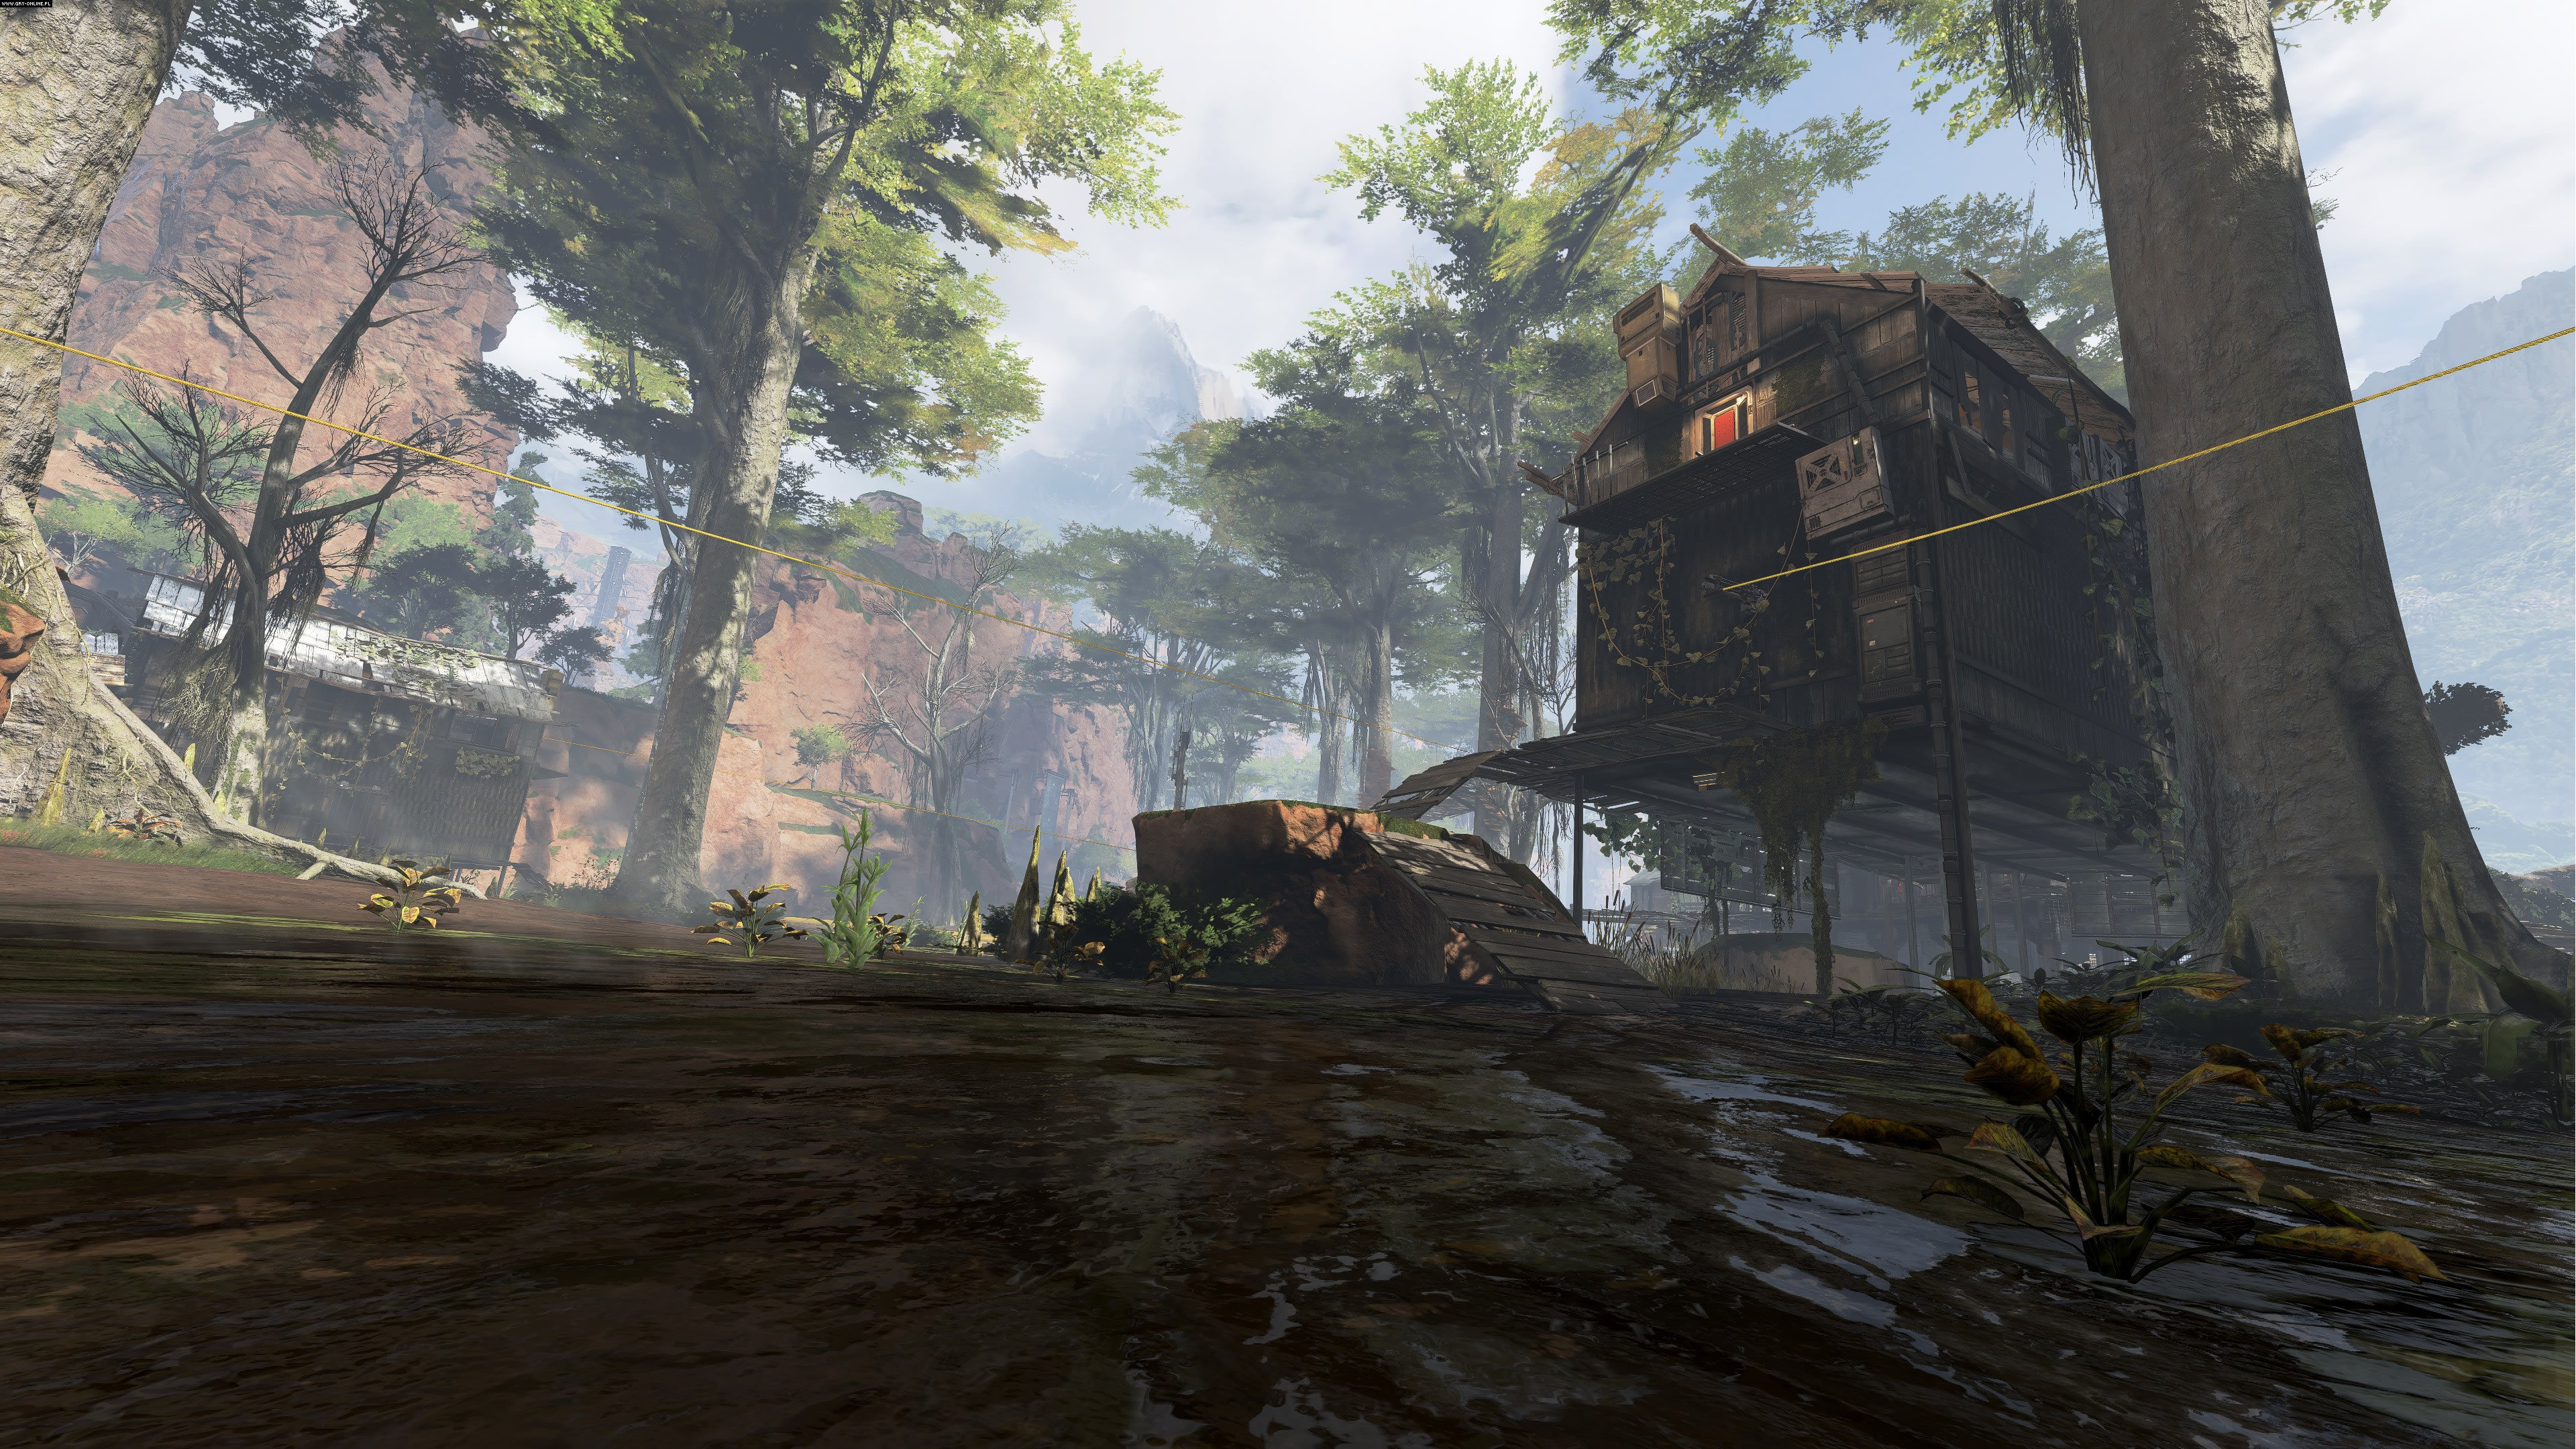 Apex Legends PC, PS4, XONE Gry Screen 1/13, Respawn Entertainment, Electronic Arts Inc.